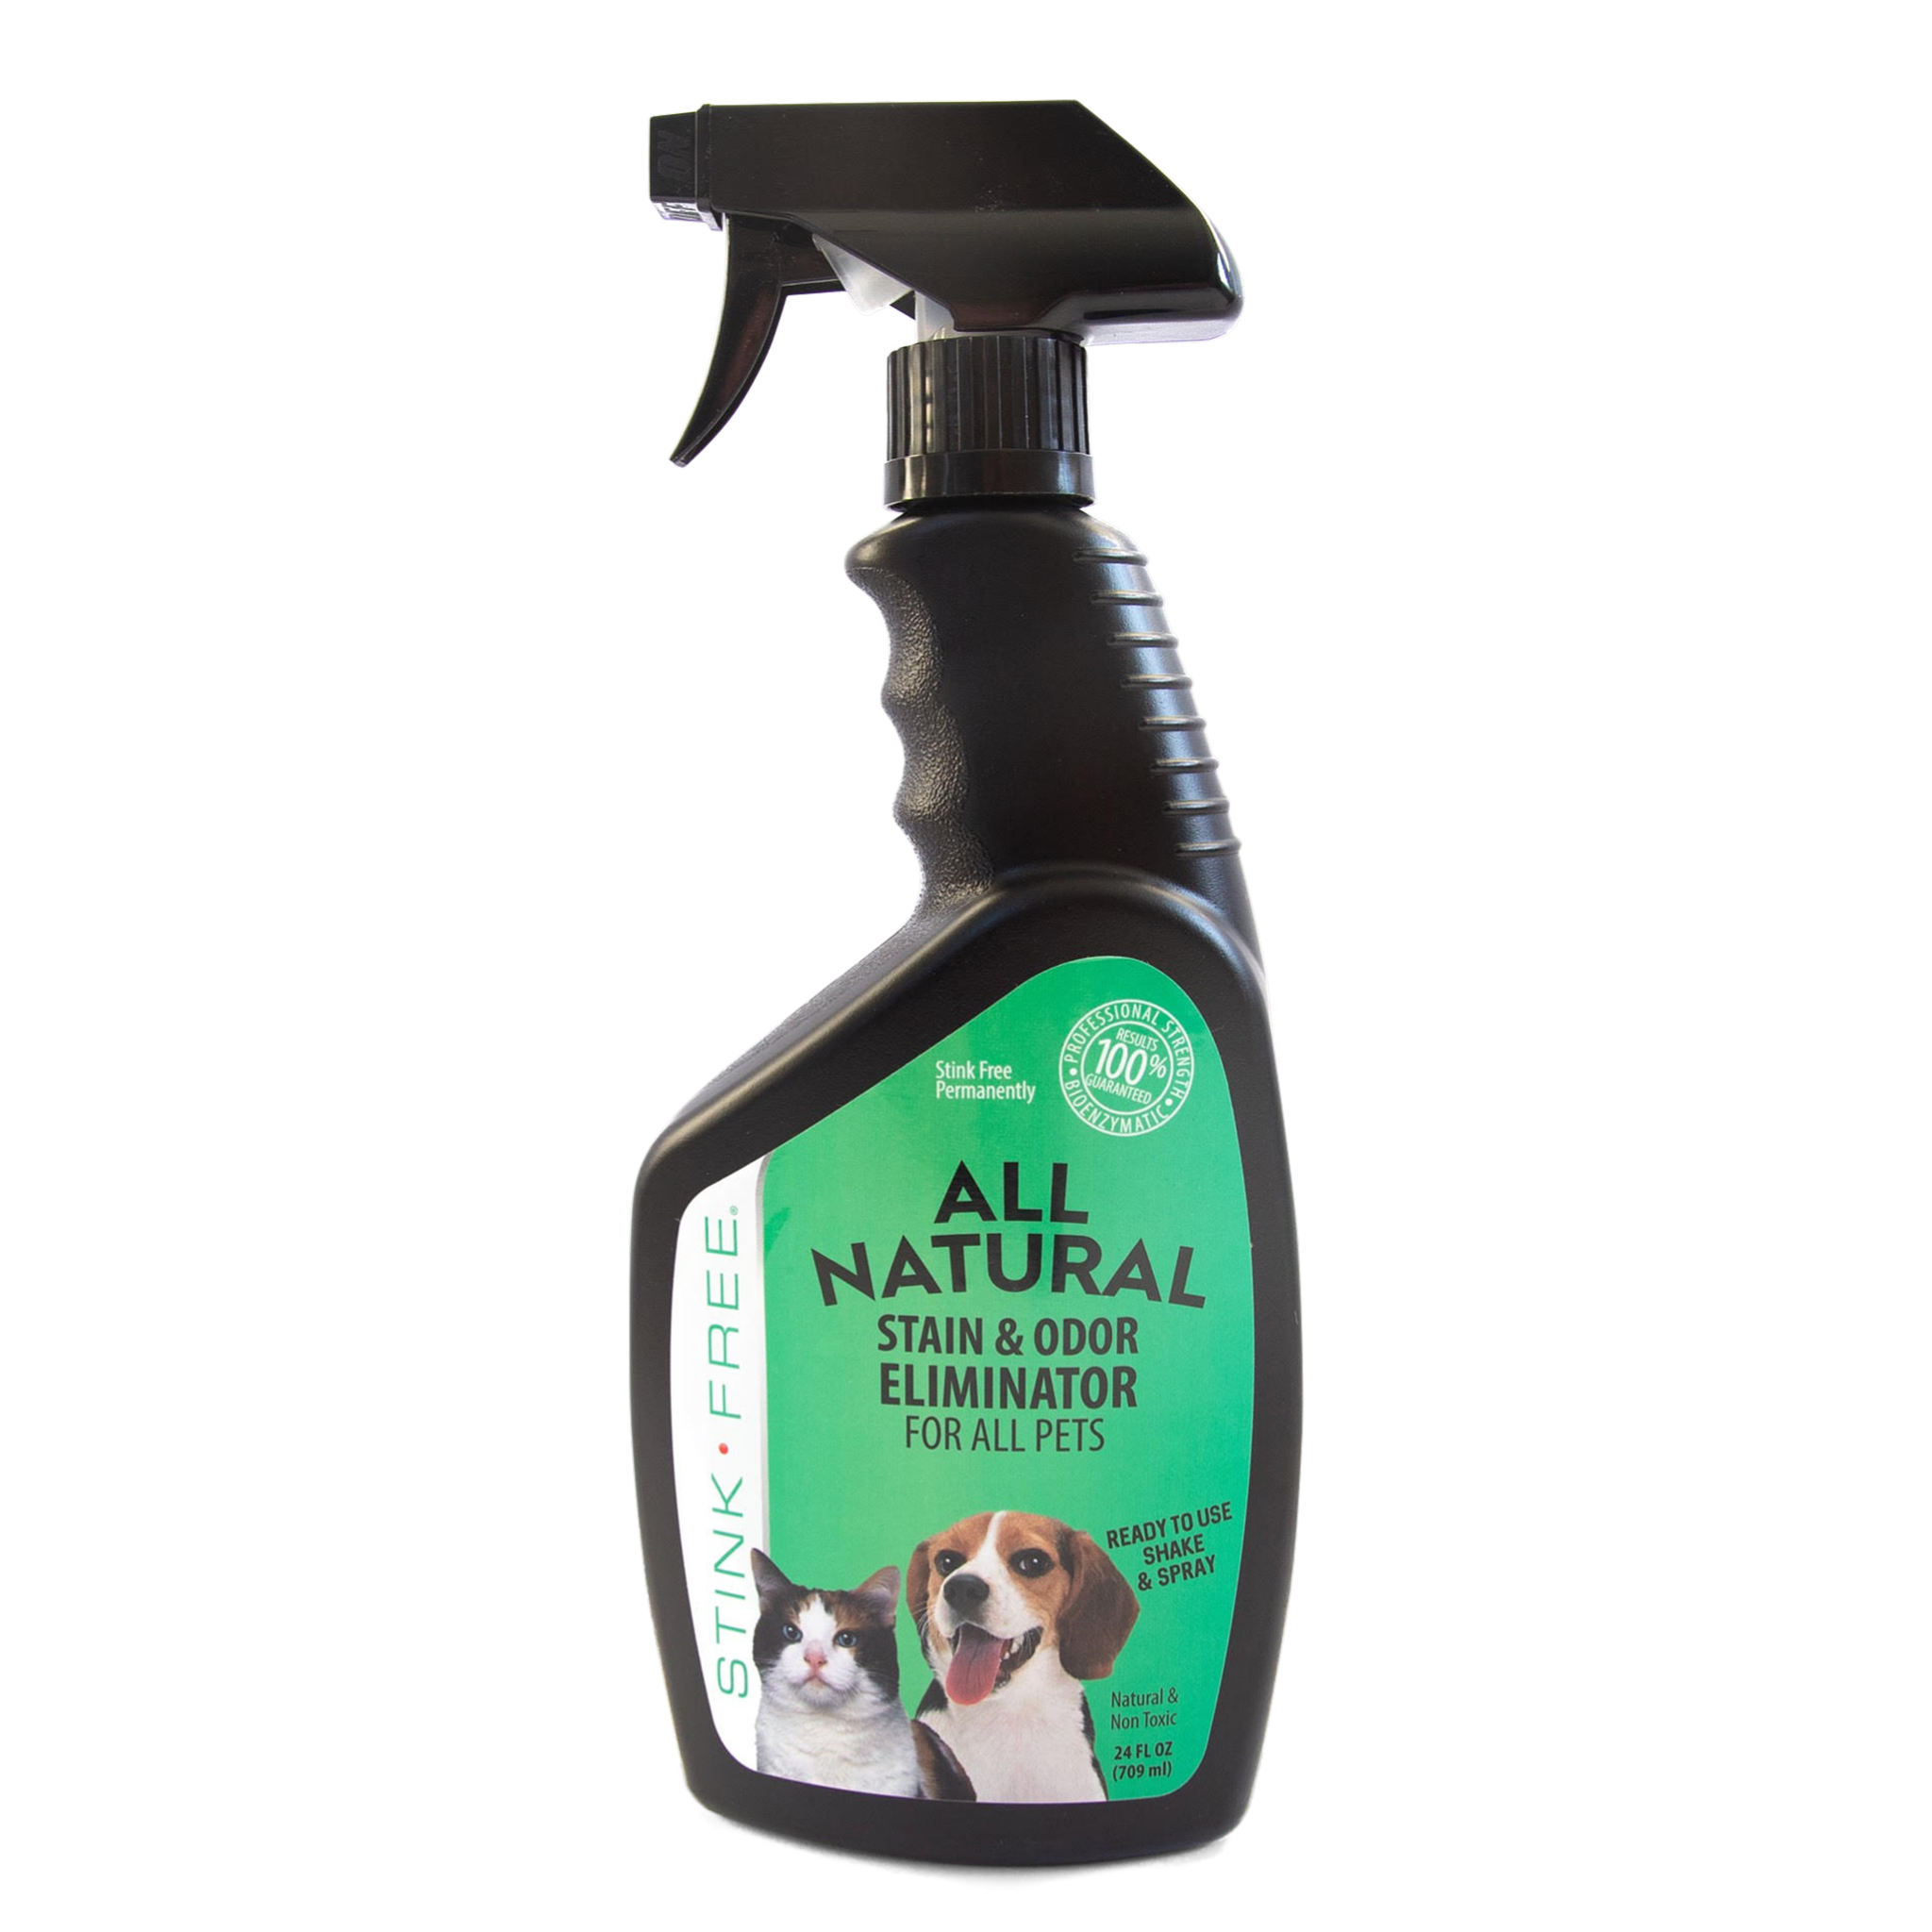 All Natural Stain & Urine Odor Eliminator for Pets (24 oz. Application Spray Bottle)